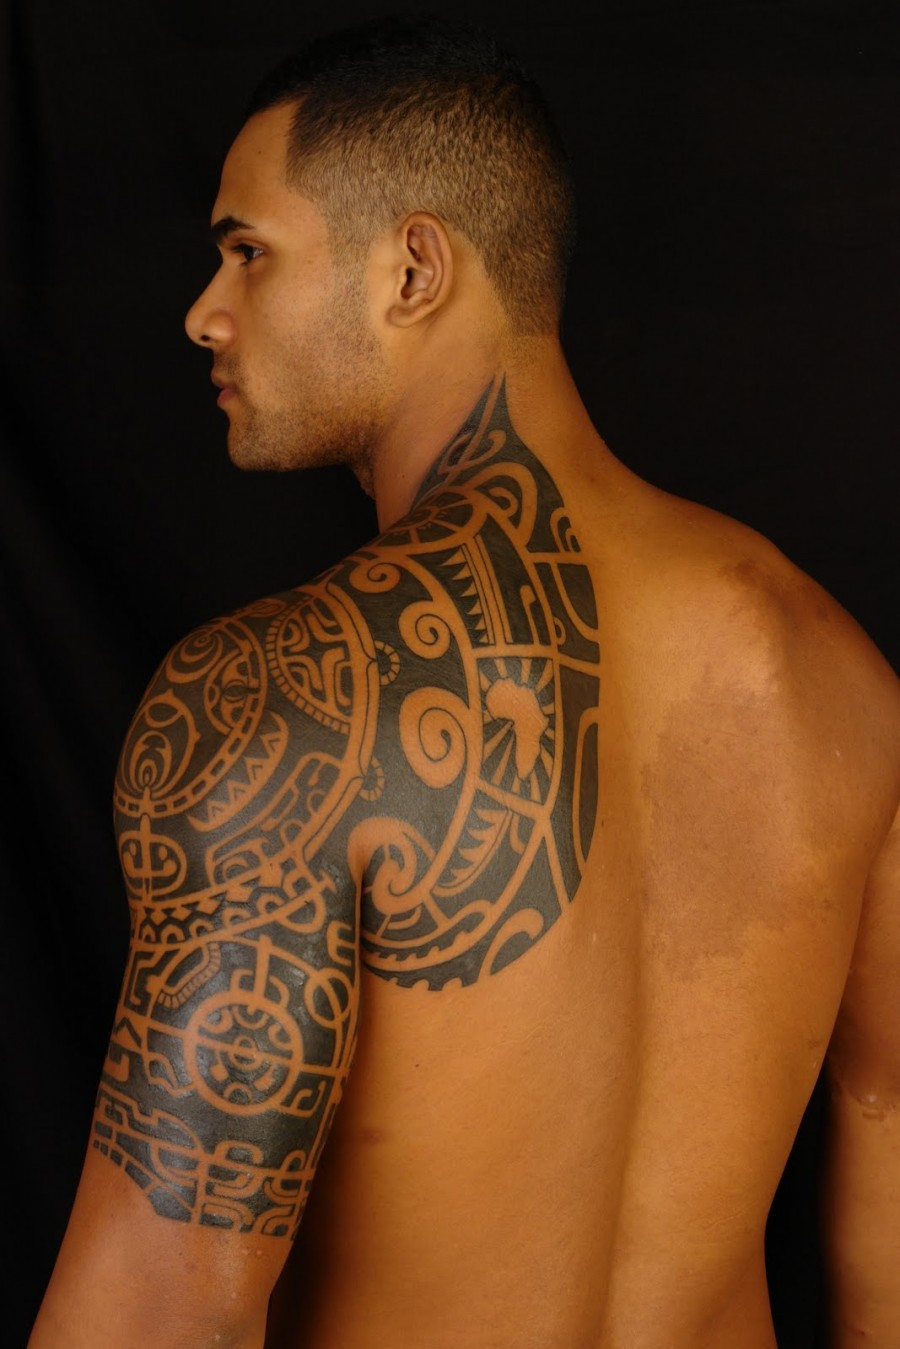 Body Art Of The Rock Tattoo Chest Tattoomagz Tattoo Designs Ink Works Body Arts Gallery